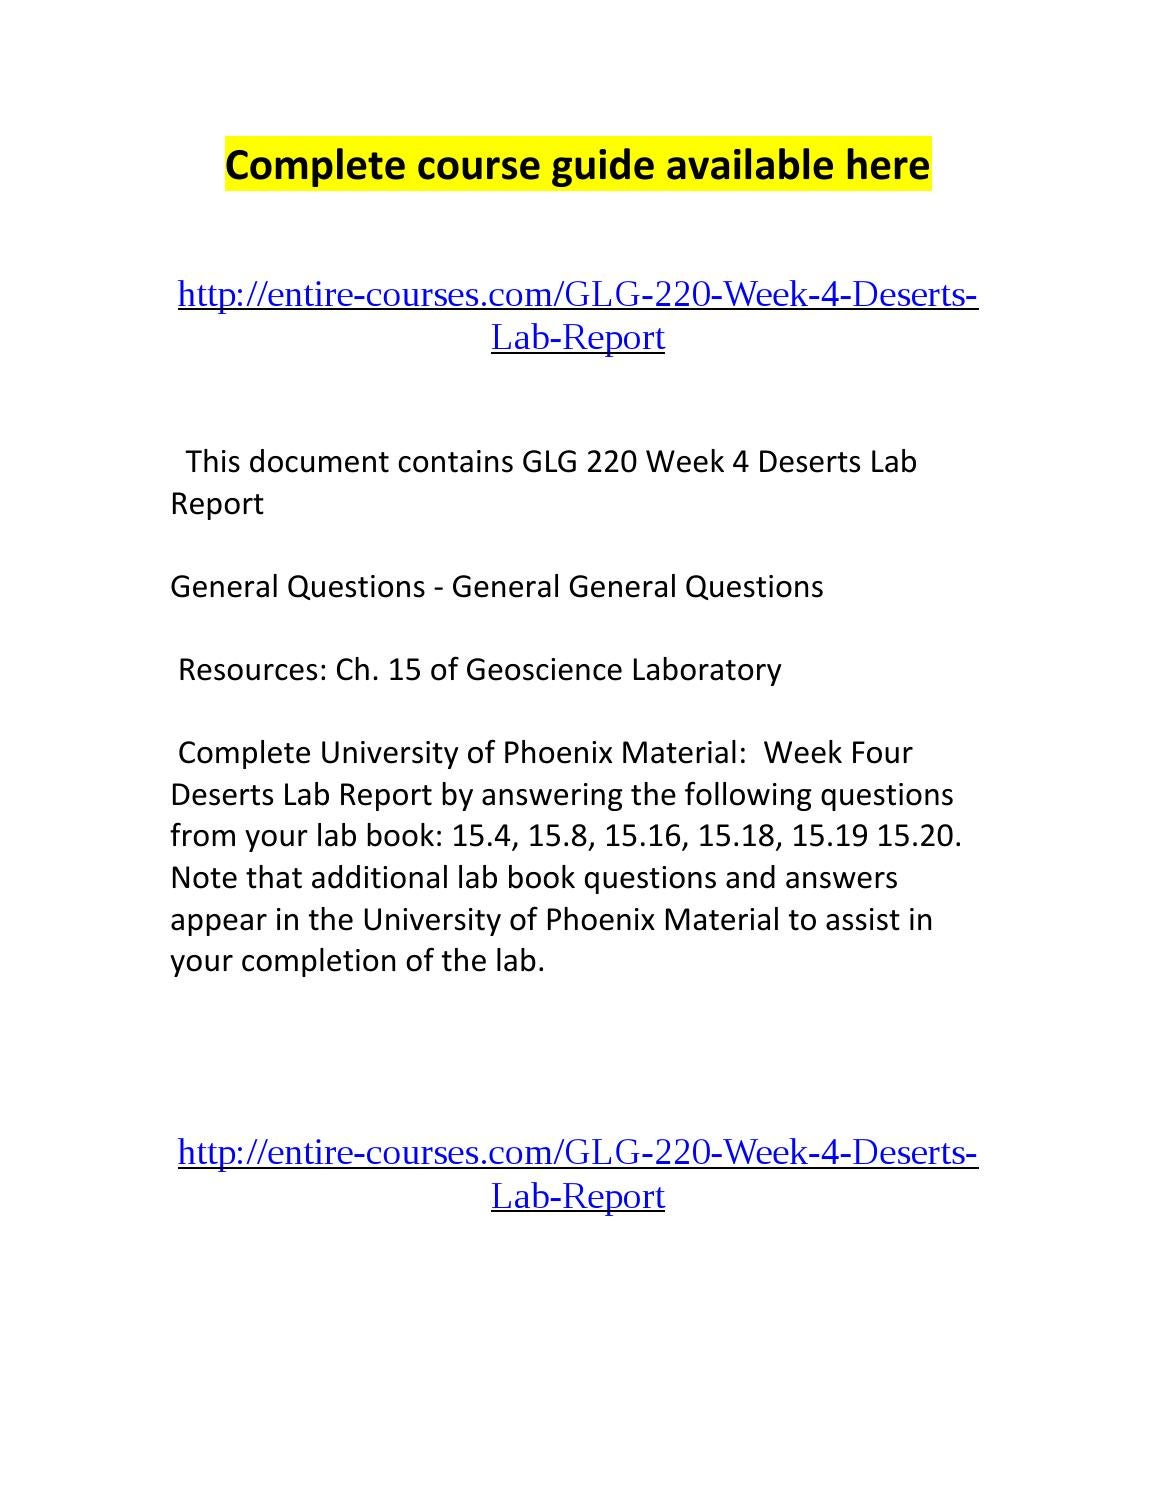 glg lab report Study flashcards on glg 220 week 2 lab report worksheet at cramcom quickly memorize the terms, phrases and much more cramcom makes it easy to get the grade you want.